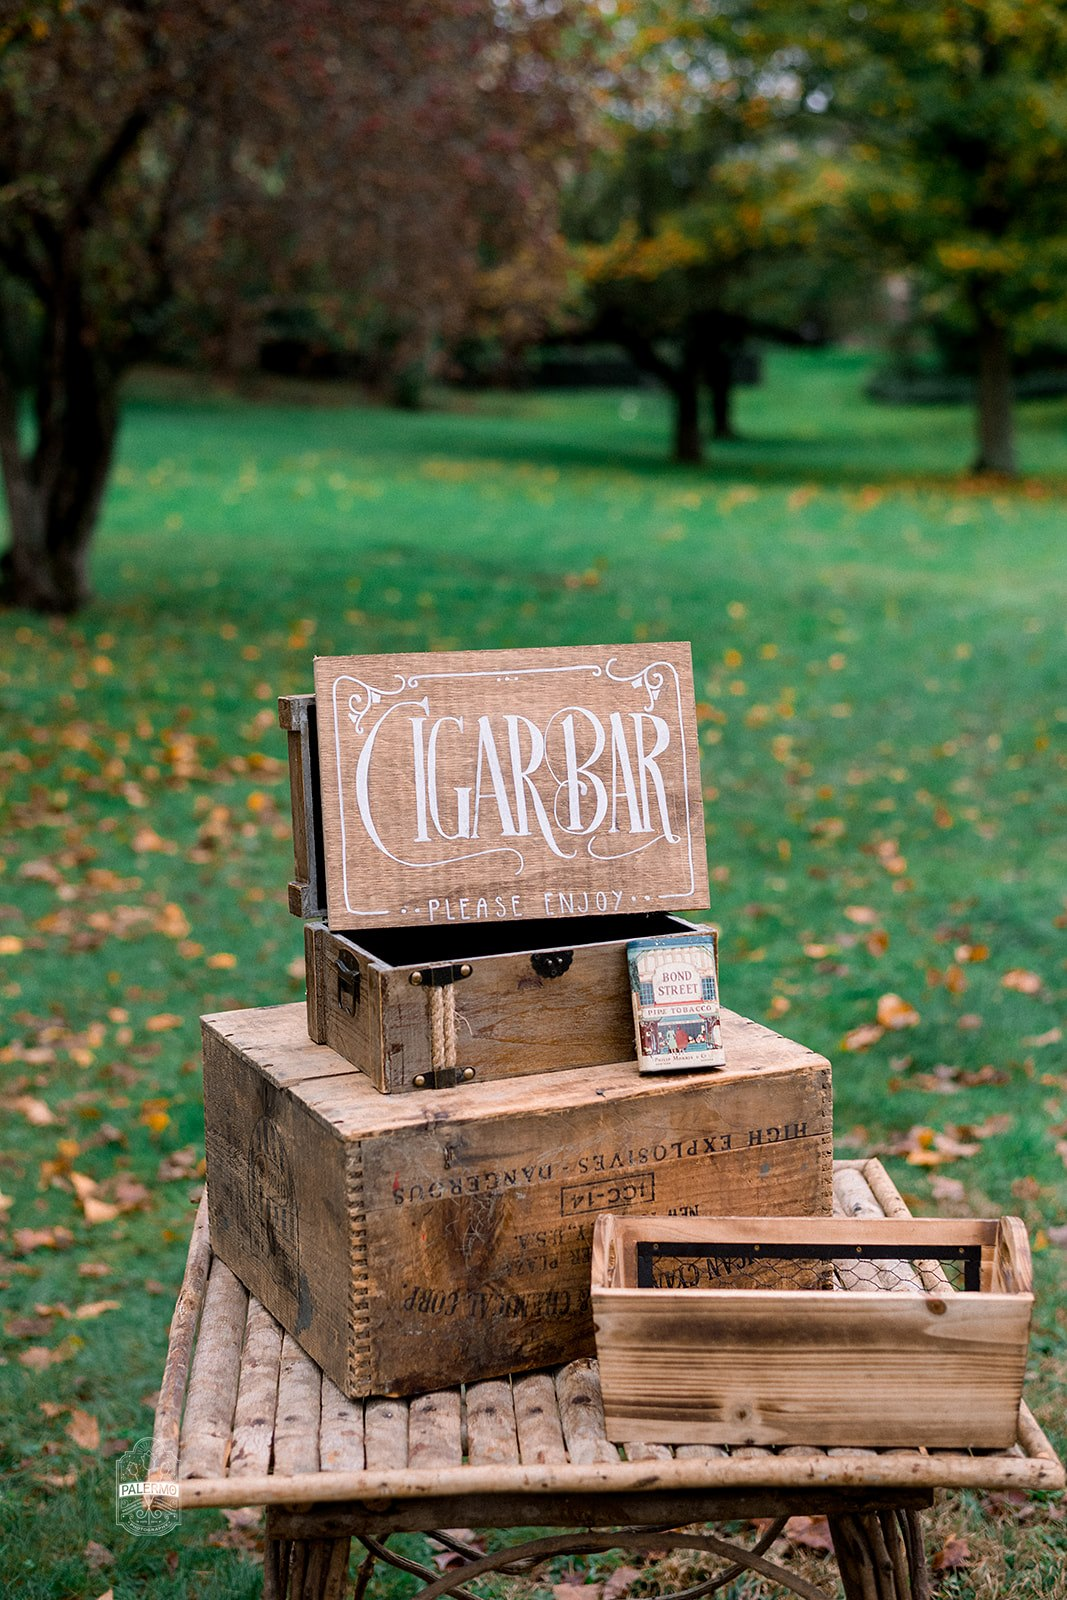 Vintage wedding reception outdoor cigar bar wedding sign for fall barn wedding in Pittsburgh, PA planned by Exhale Events. Find more wedding inspiration at exhale-events.com!